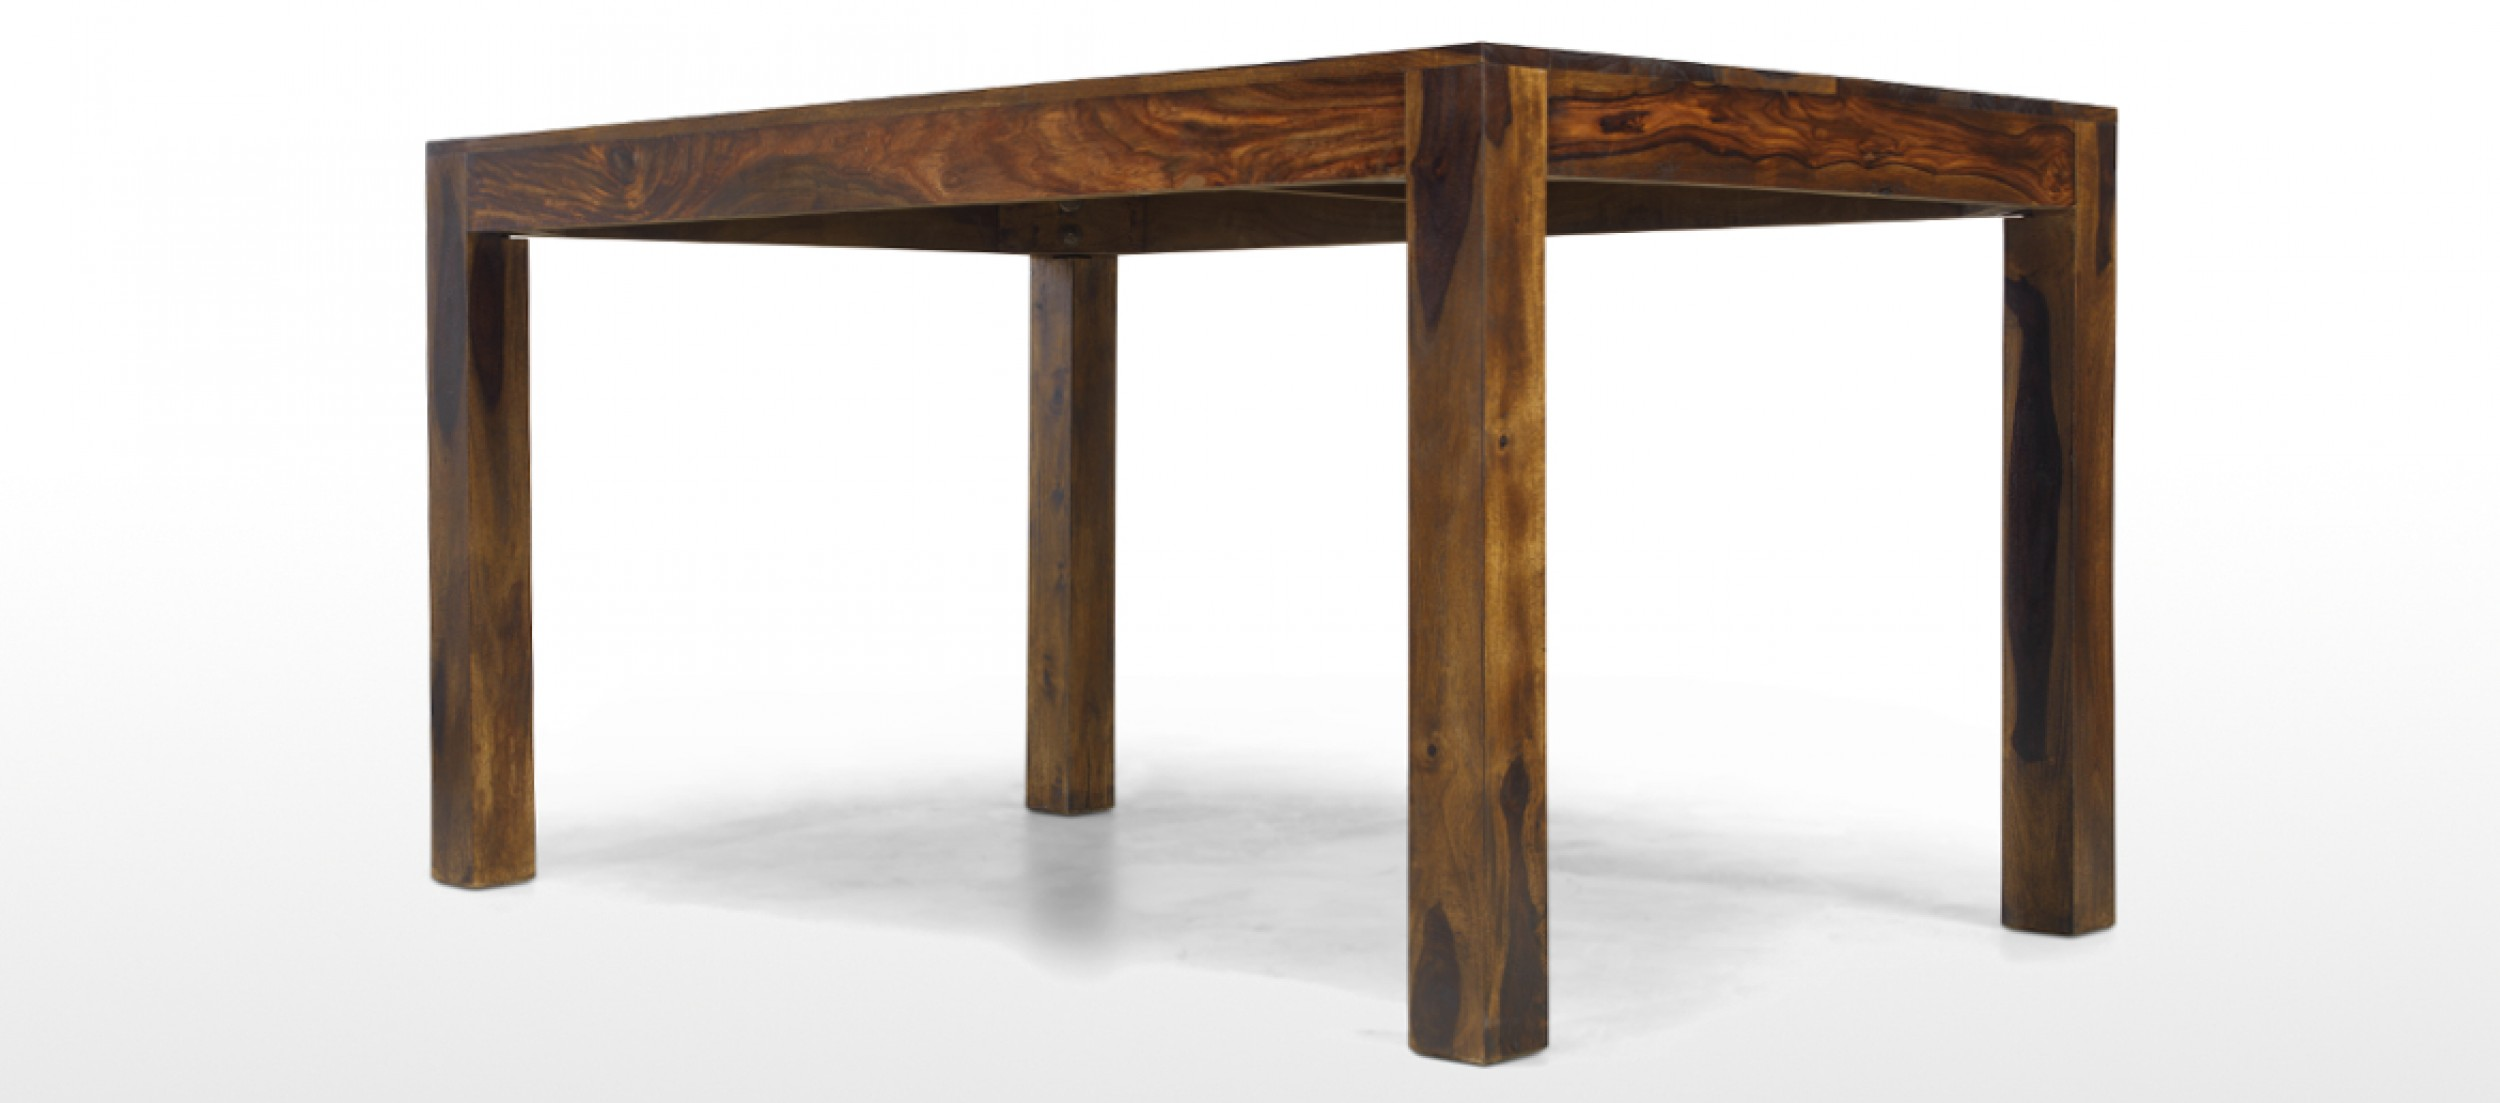 Cube Sheesham 140 cm Dining Table Quercus Living : cu 39 cuba sheesham dining table low profile from www.quercusliving.co.uk size 2500 x 1103 jpeg 171kB